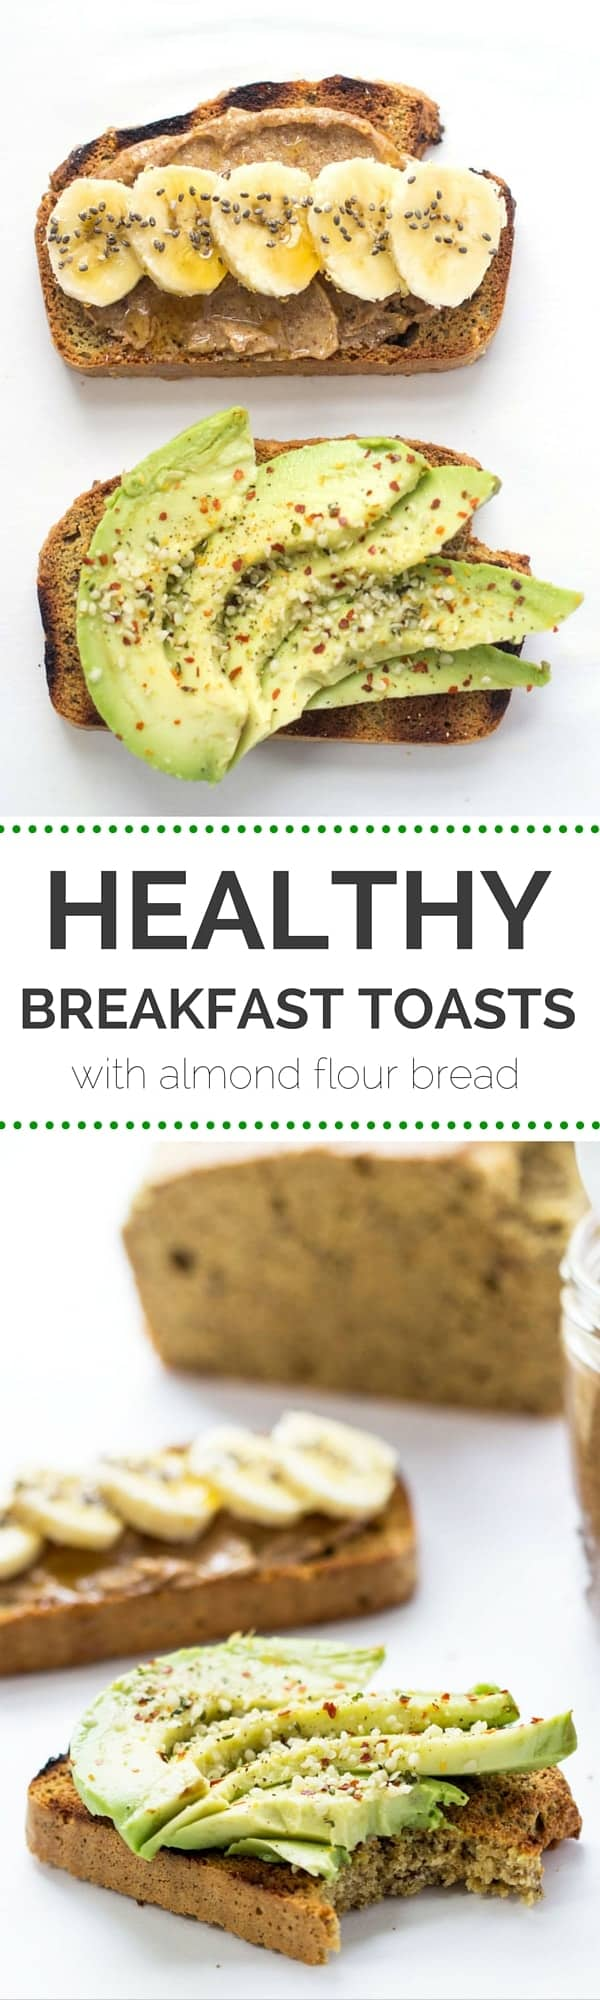 Super HEALTHY breakfast toasts are so easy to make: 1) toast a slice of this almond flour bread, 2) top with nut butter + sliced banana, 3) top with sliced avocado and pepper flakes and 4) ENJOY!